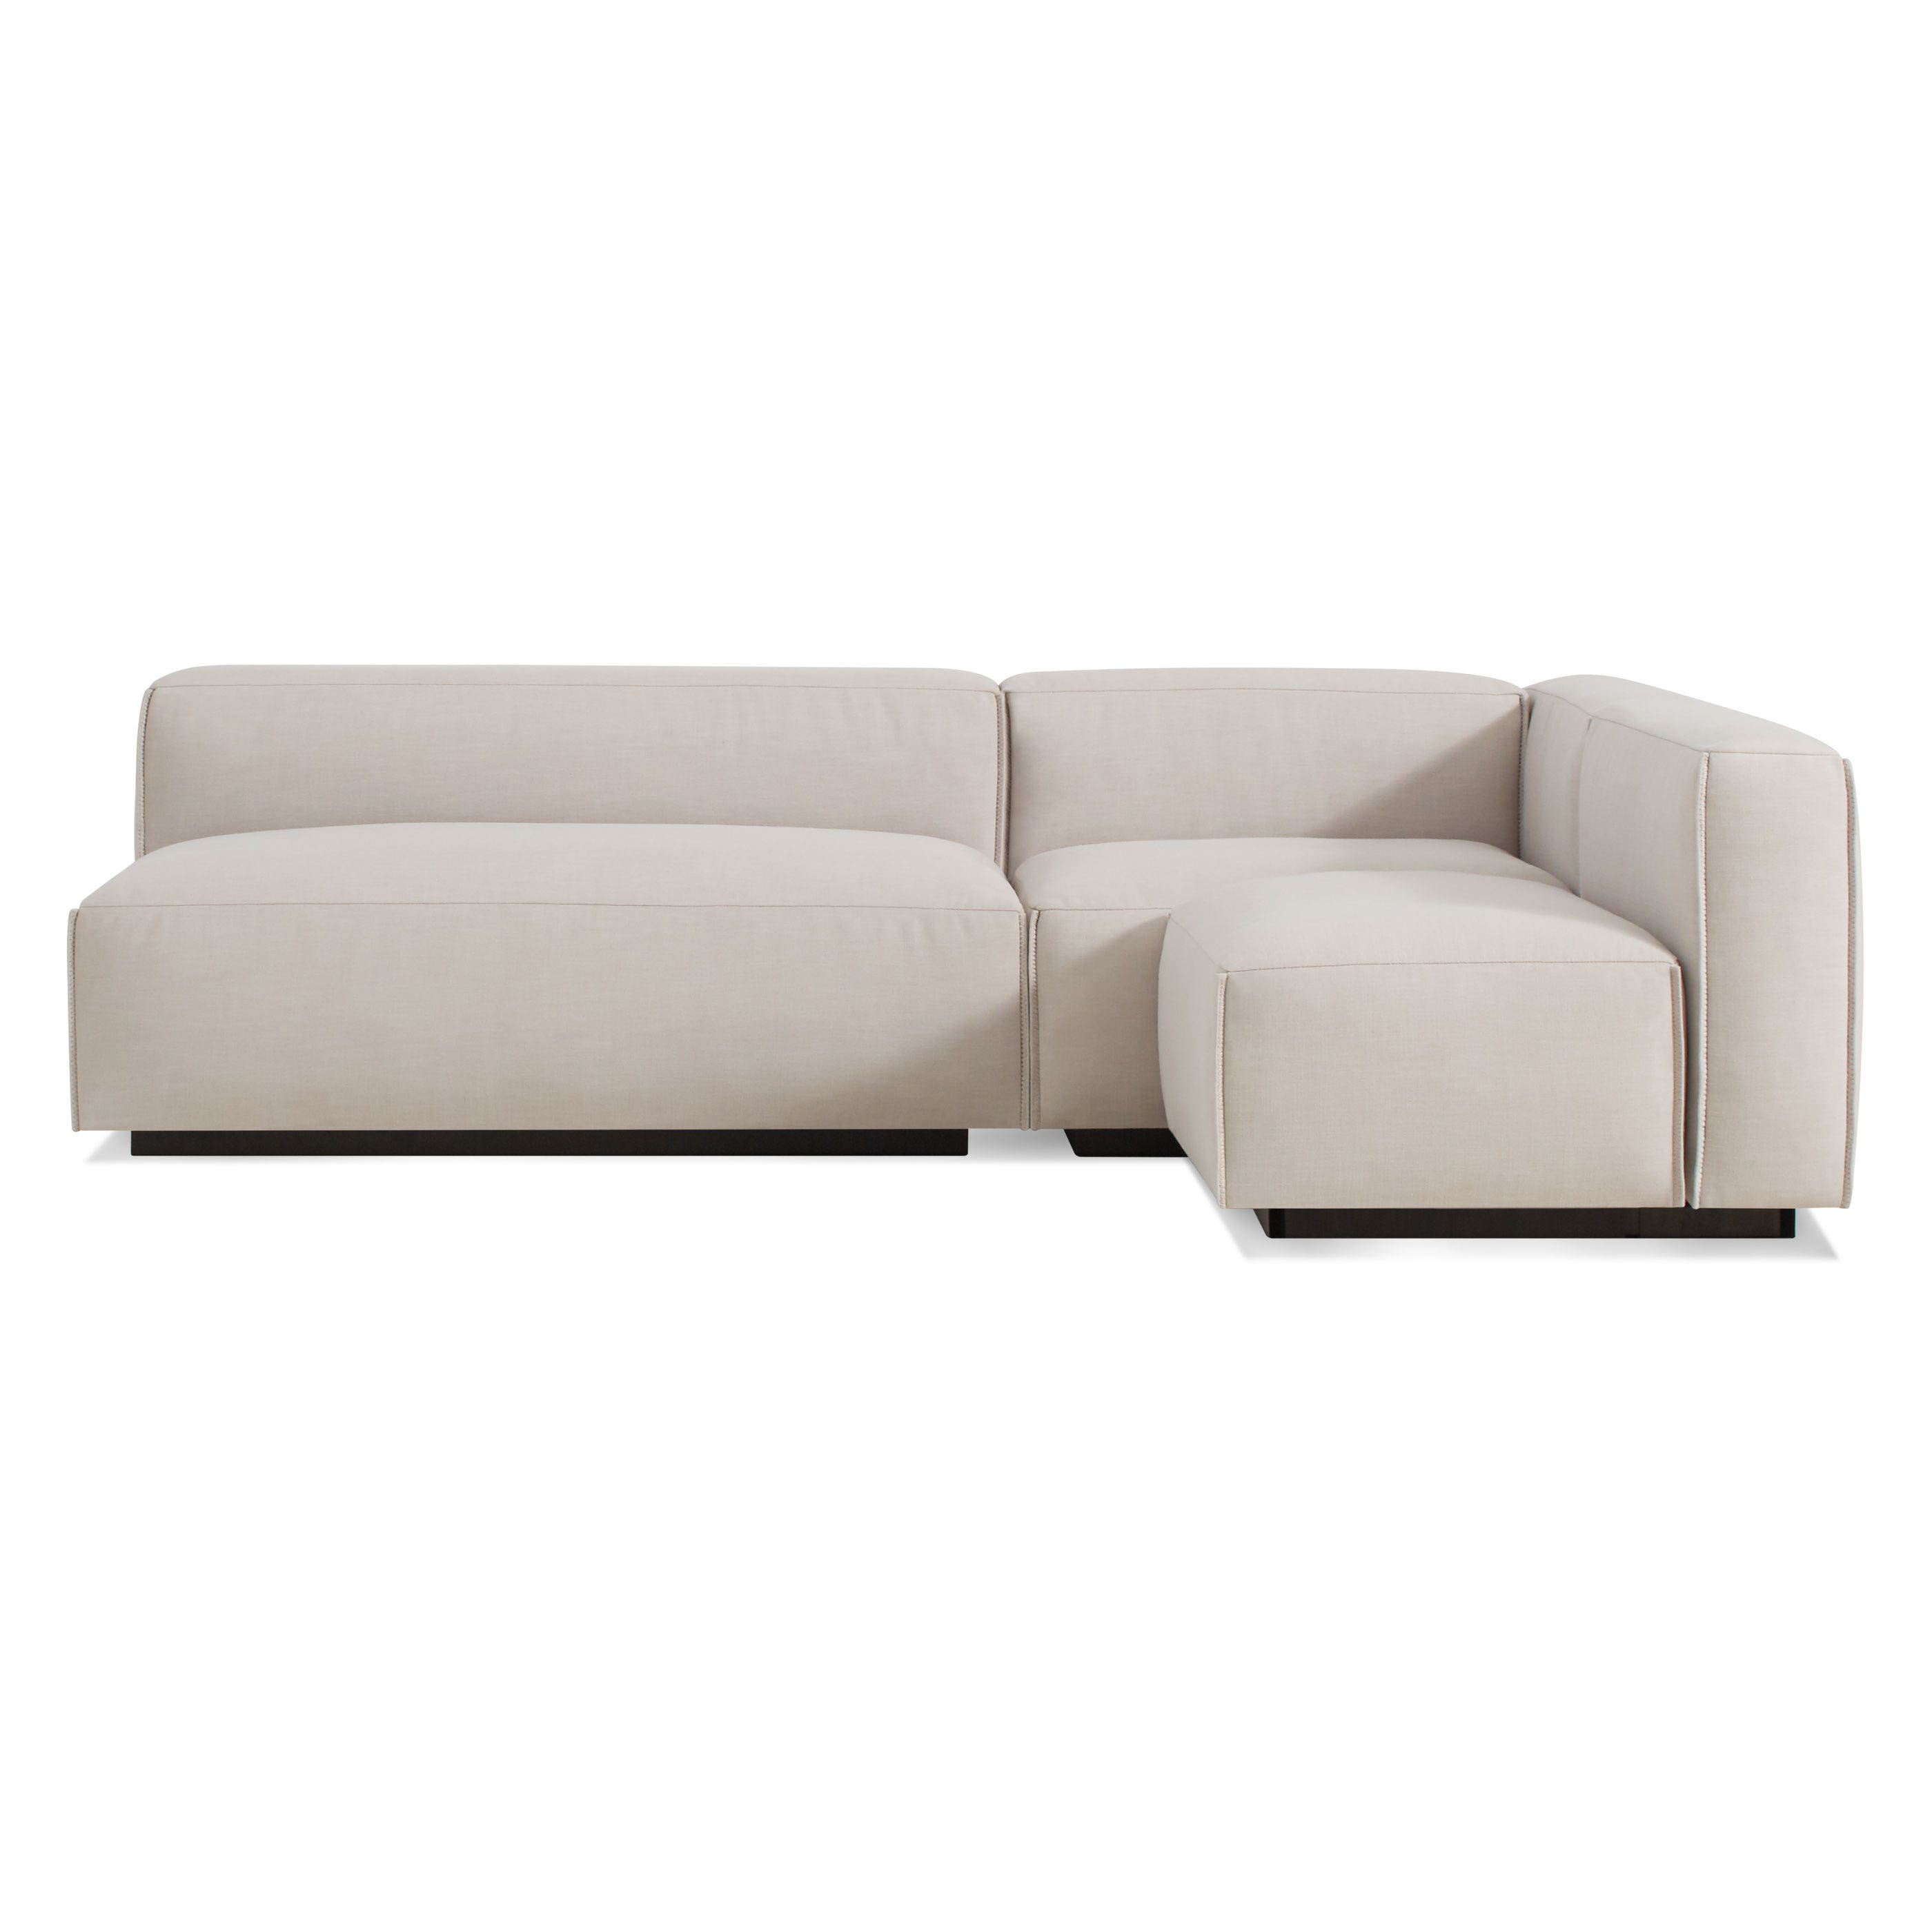 sofas sectional of sectionals room living with cement dawson andre furniture best ideas